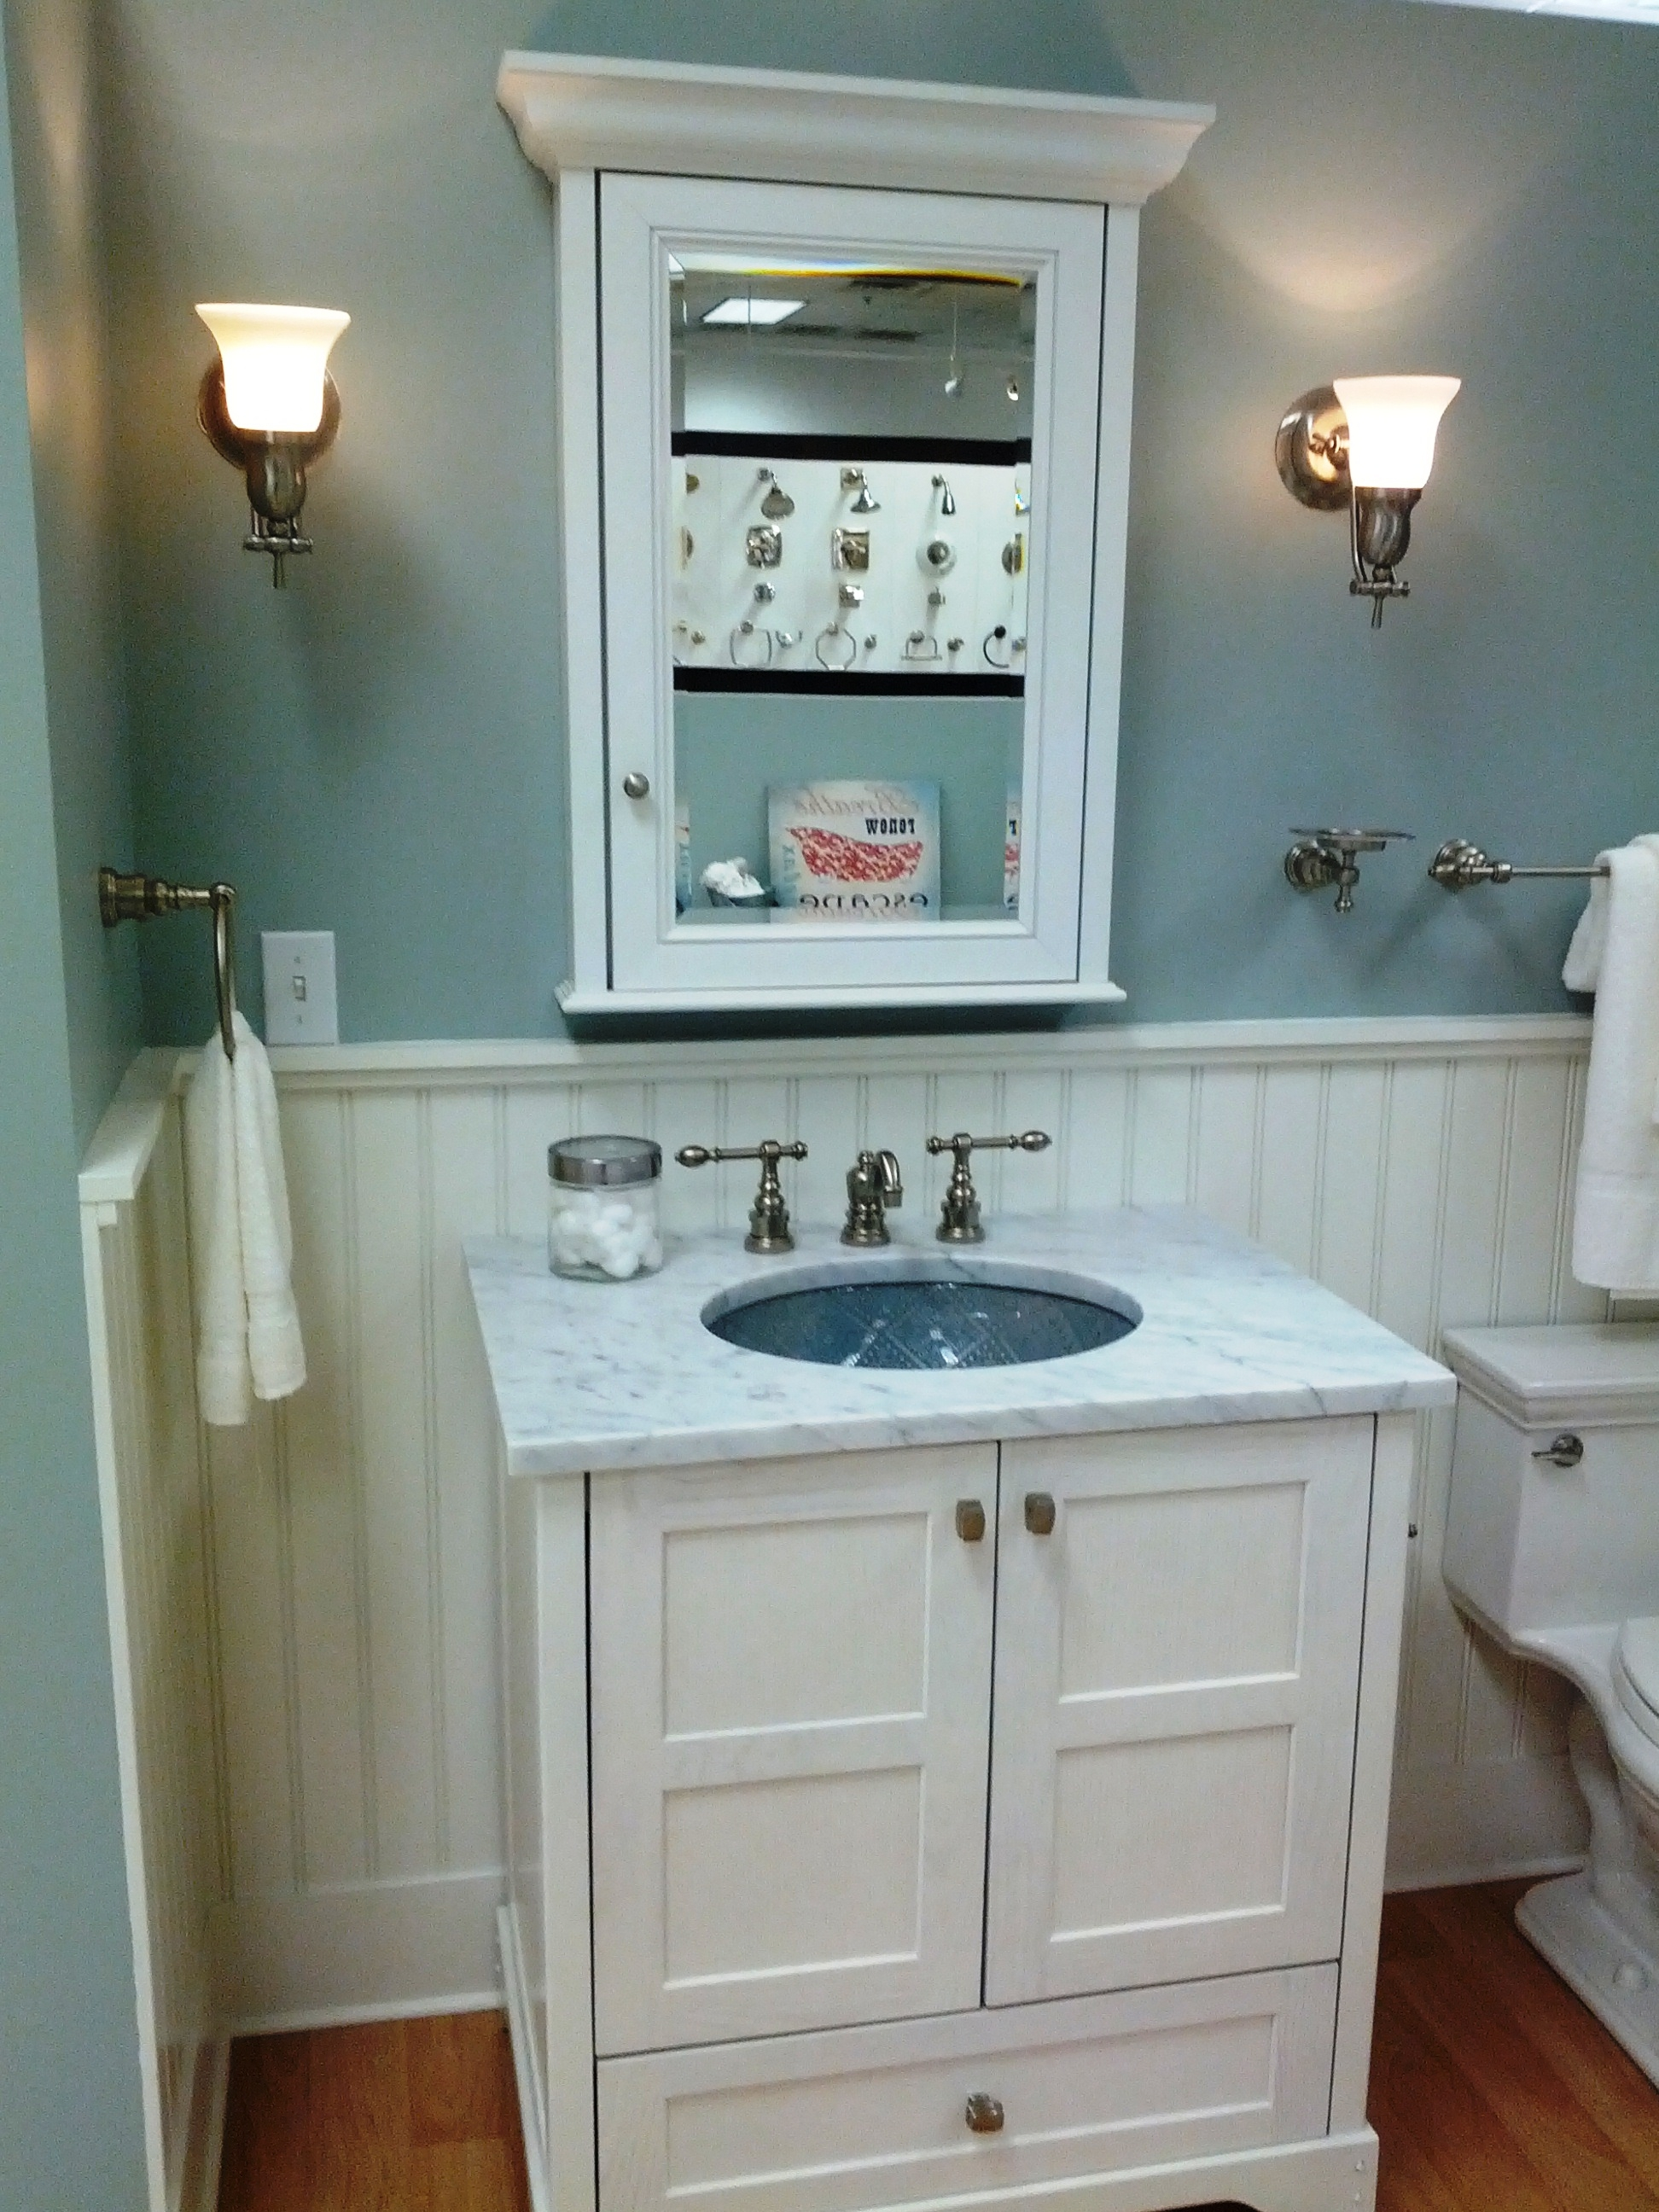 Wainscoting Behind Bathroom Vanity